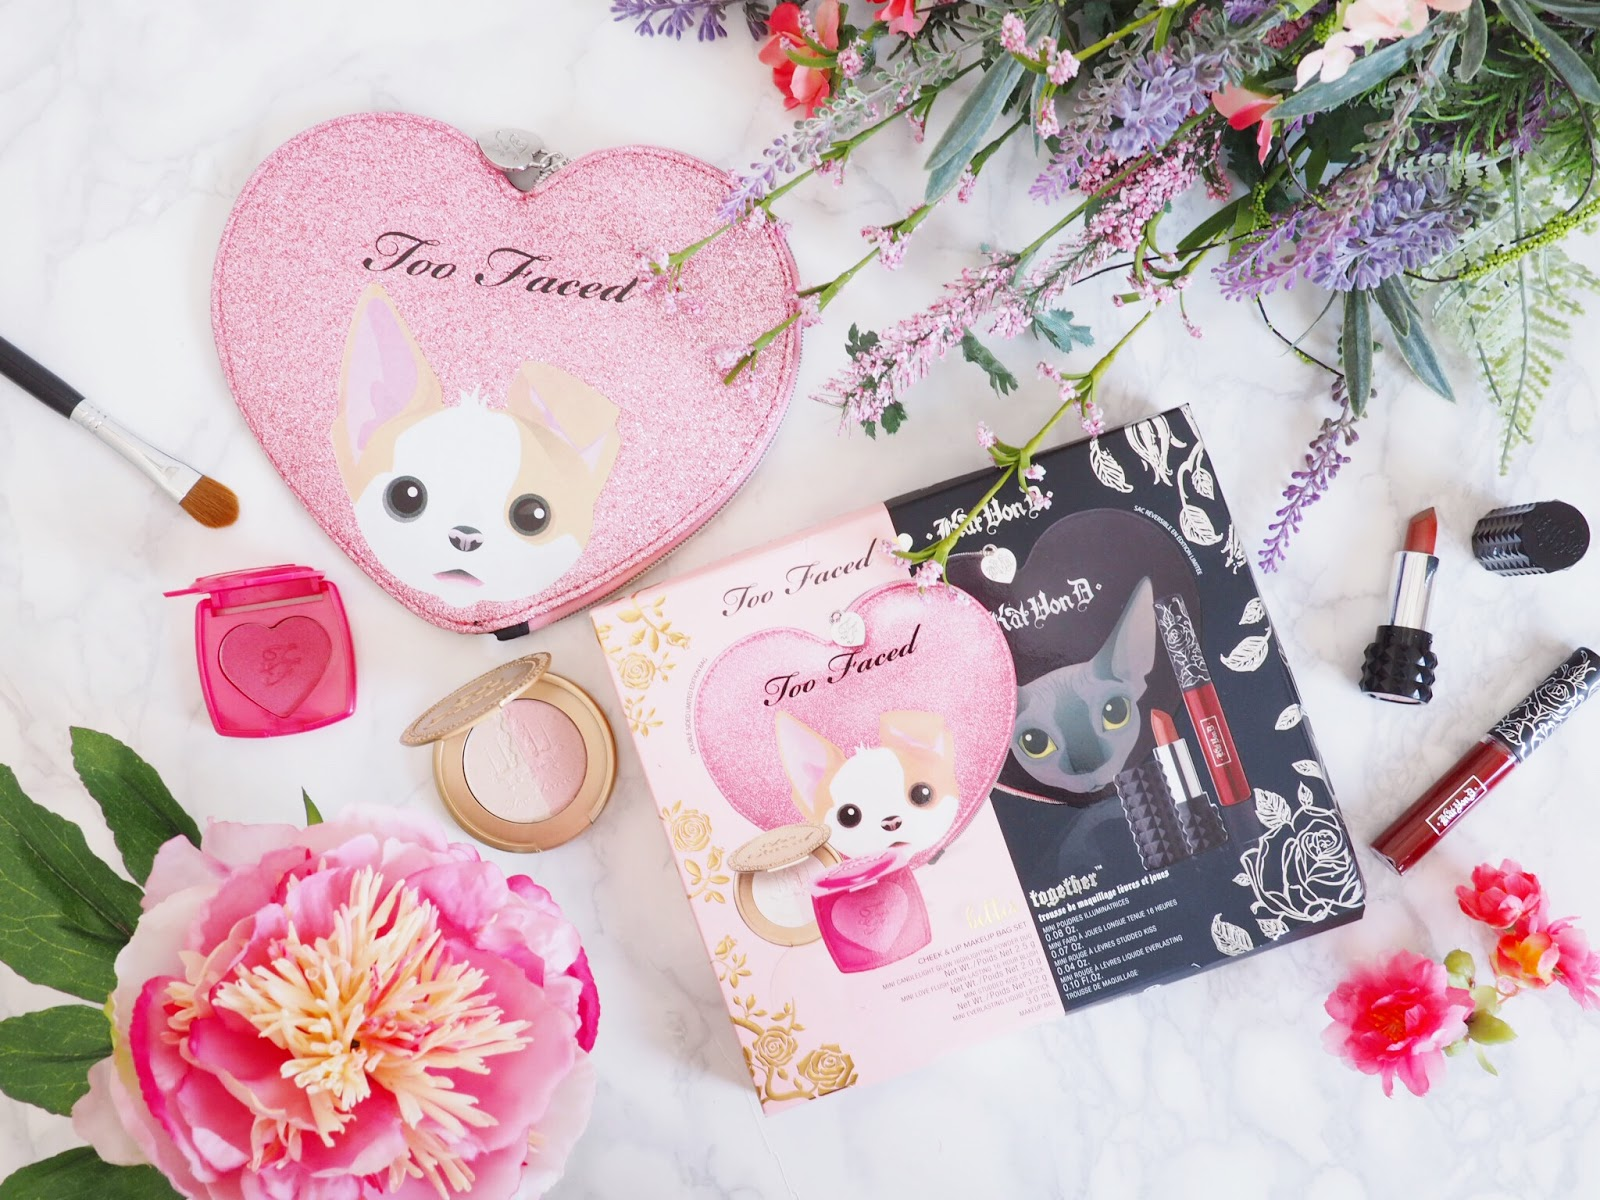 The Kat Von D And Too Faced Better Together Collaboration